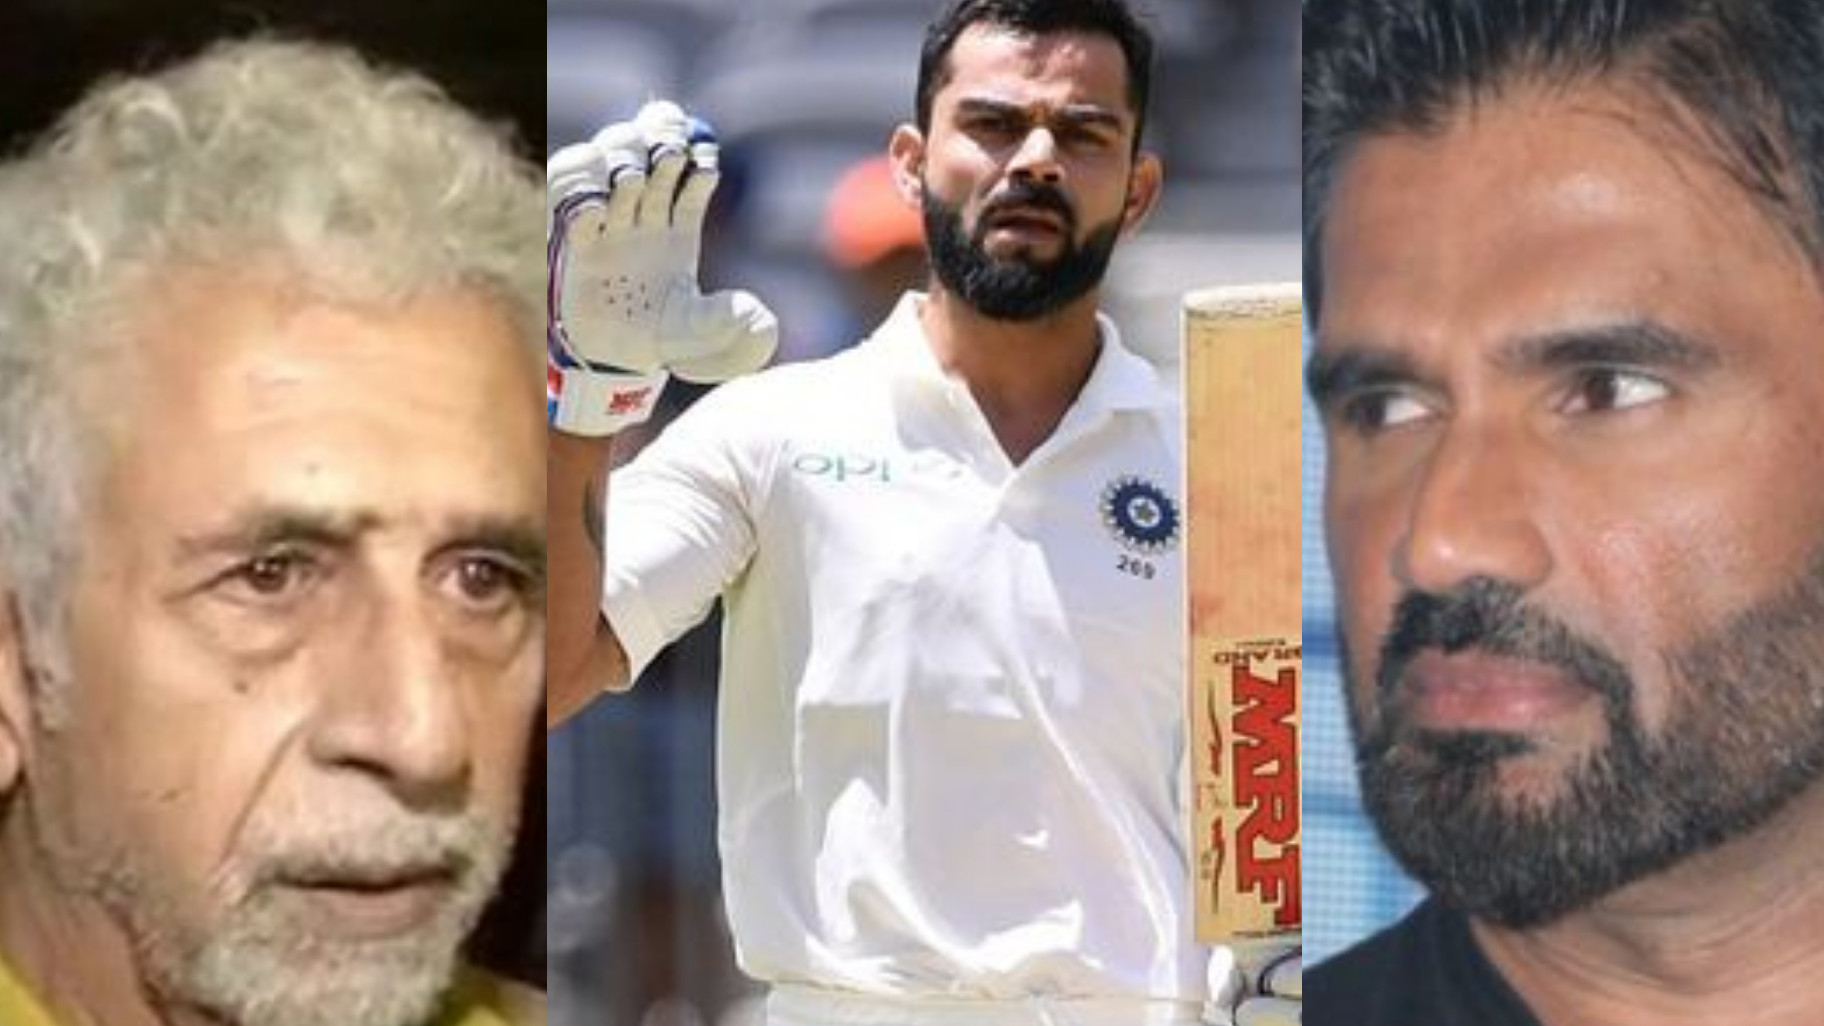 WATCH - Suniel Shetty replies in kind to Naseeruddin Shah's comments on Virat Kohli; calls him God of cricket